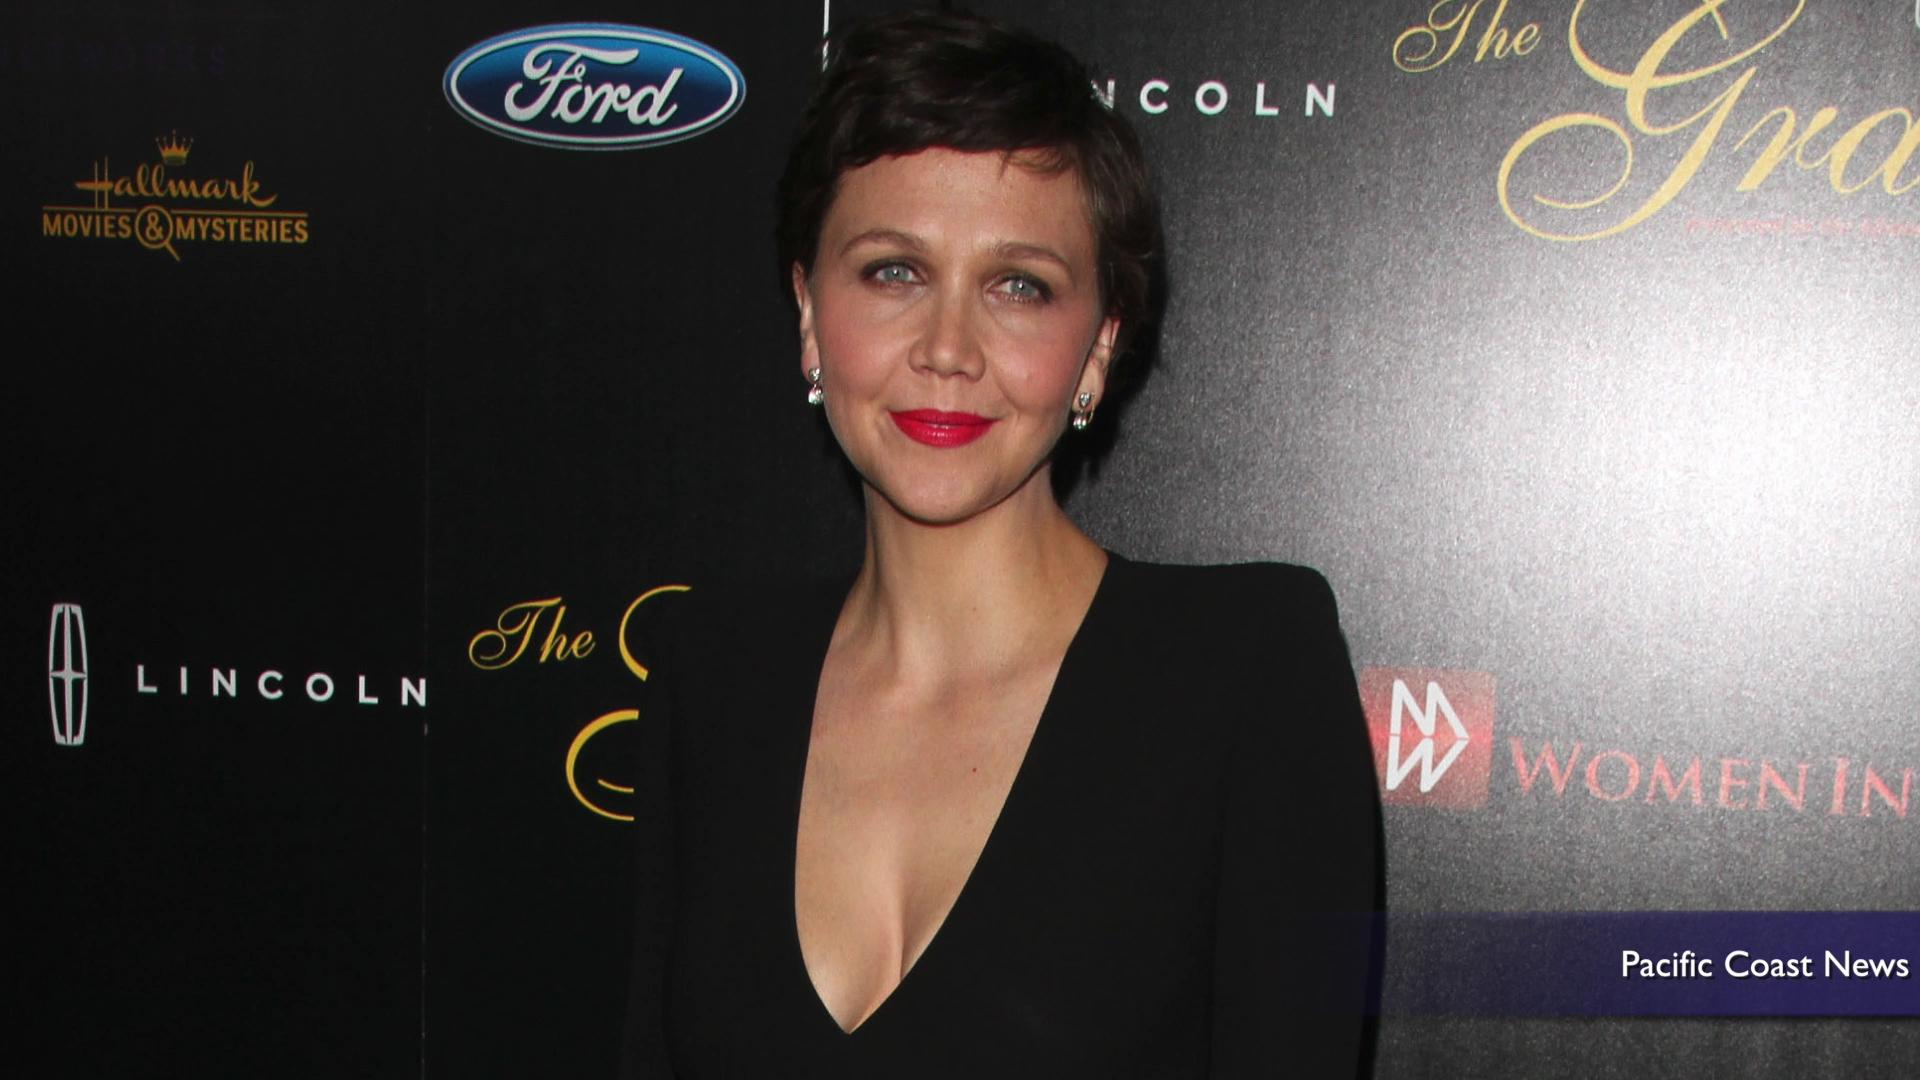 37-year-old Maggie Gyllenhaal 'too old'